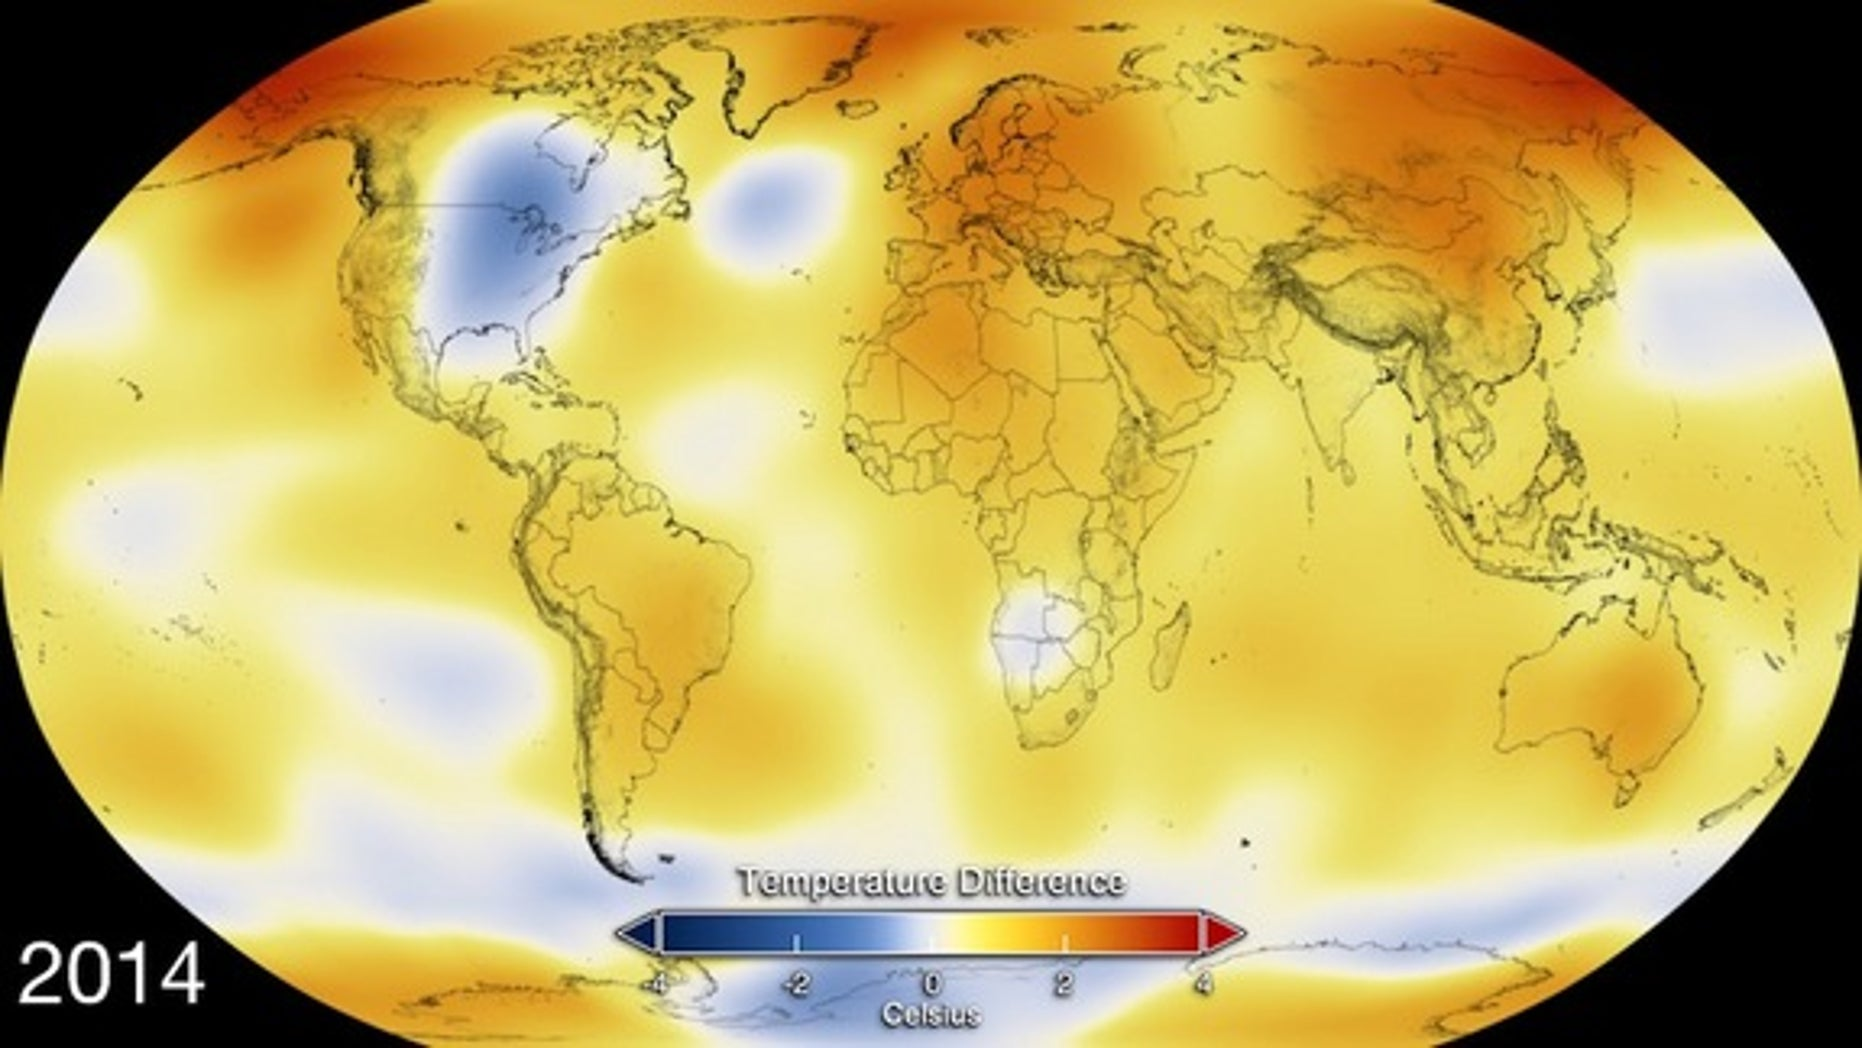 This color-coded map displays global temperature anomaly data from 2014.